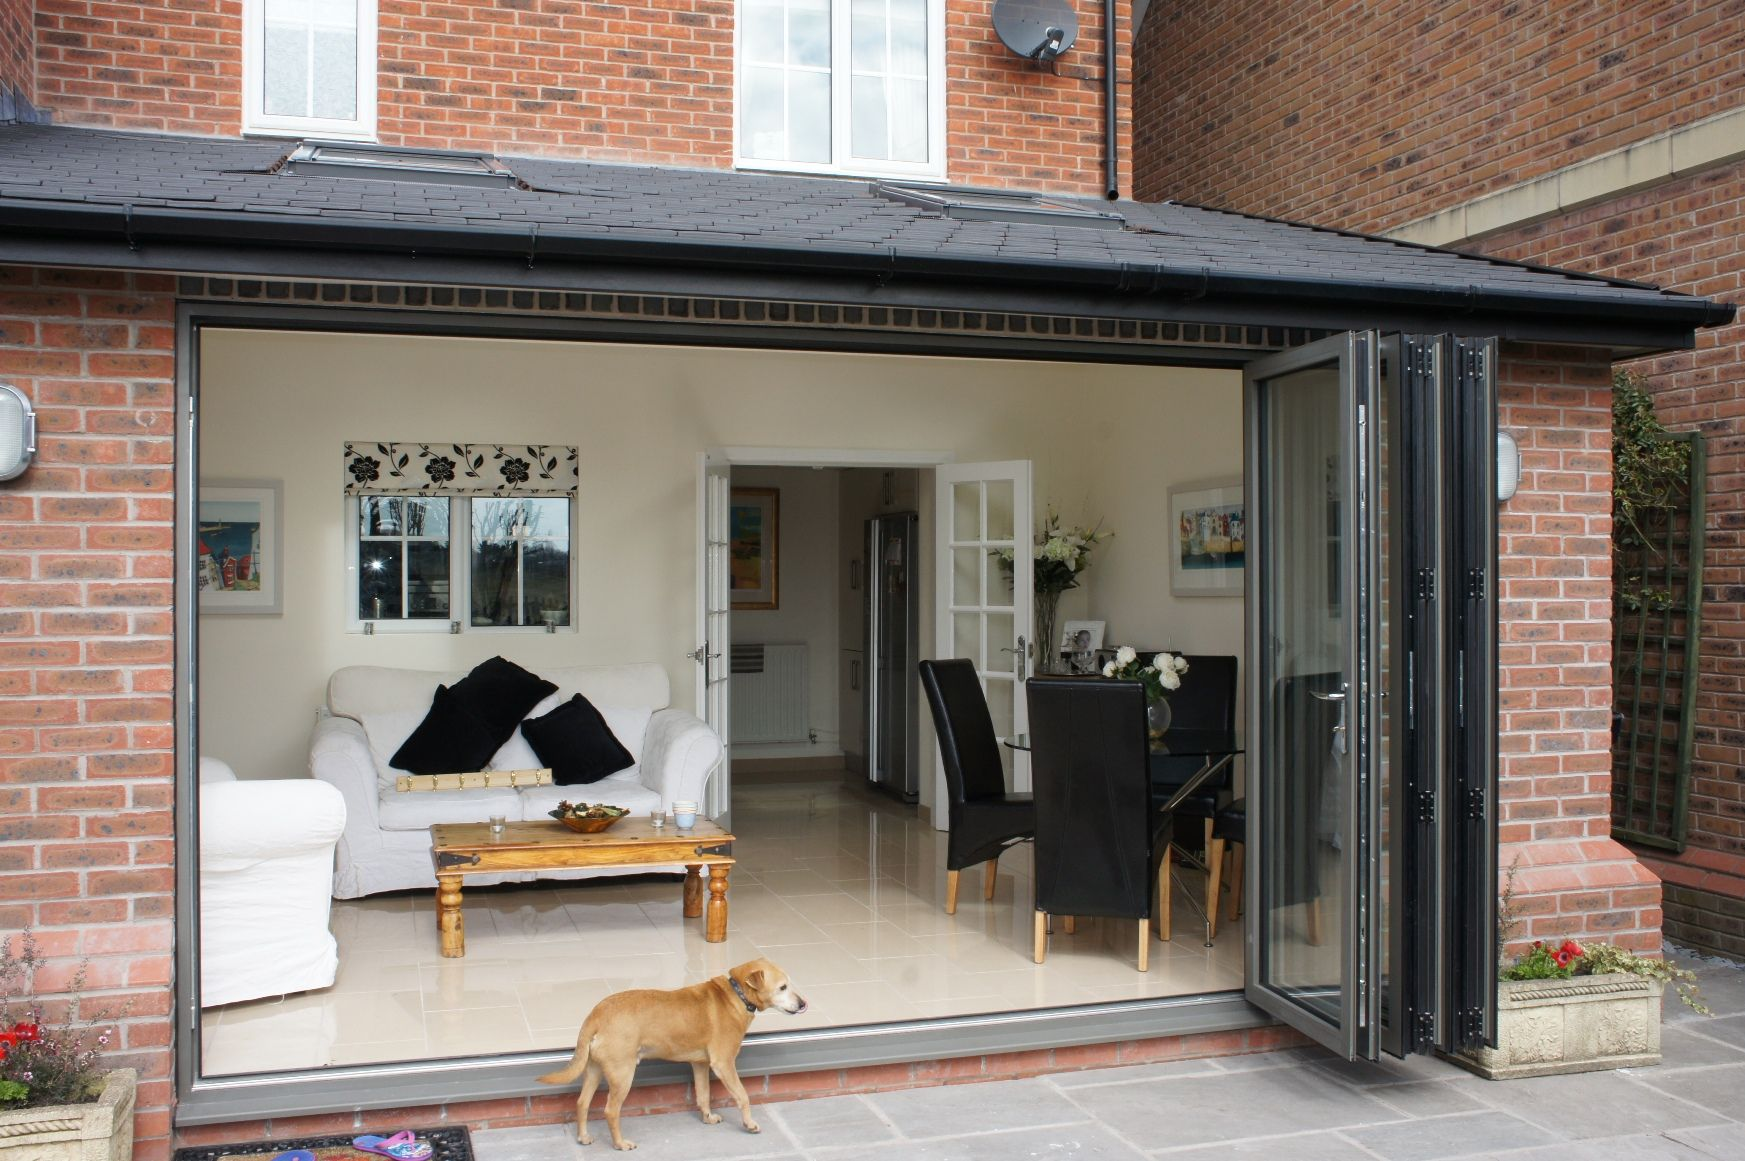 78 Best Images About Home Extensions On Pinterest Extension & Folding Door Extension Images Album - Losro.com pezcame.com